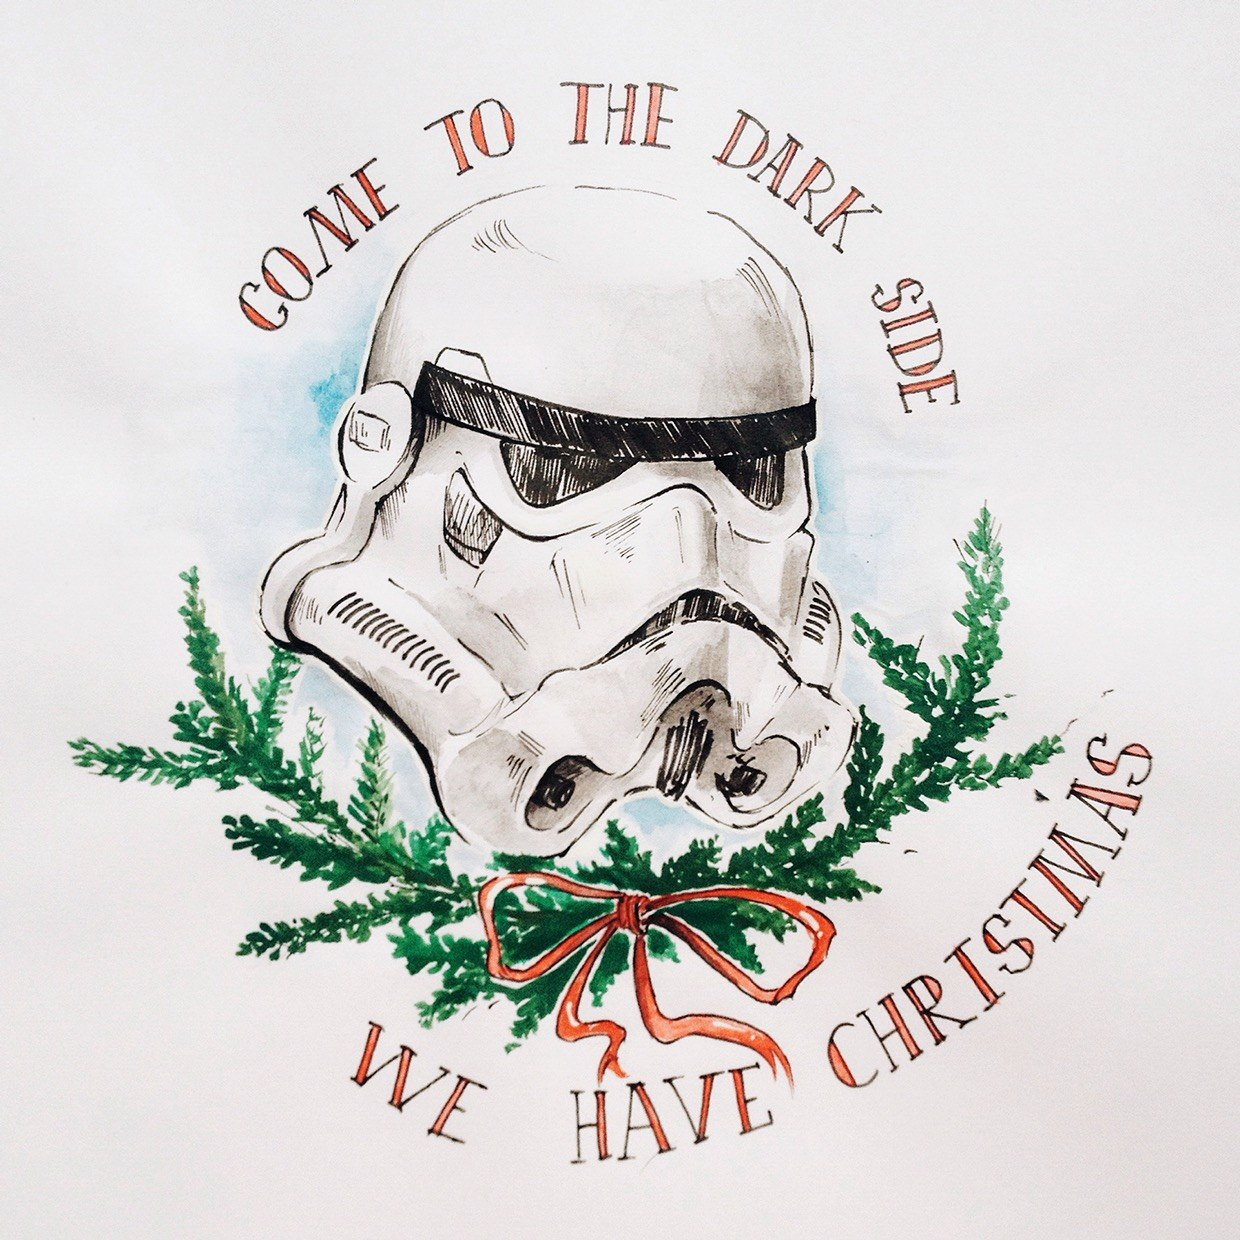 TieFighters Stormtrooper Christmas Card Created By Ira